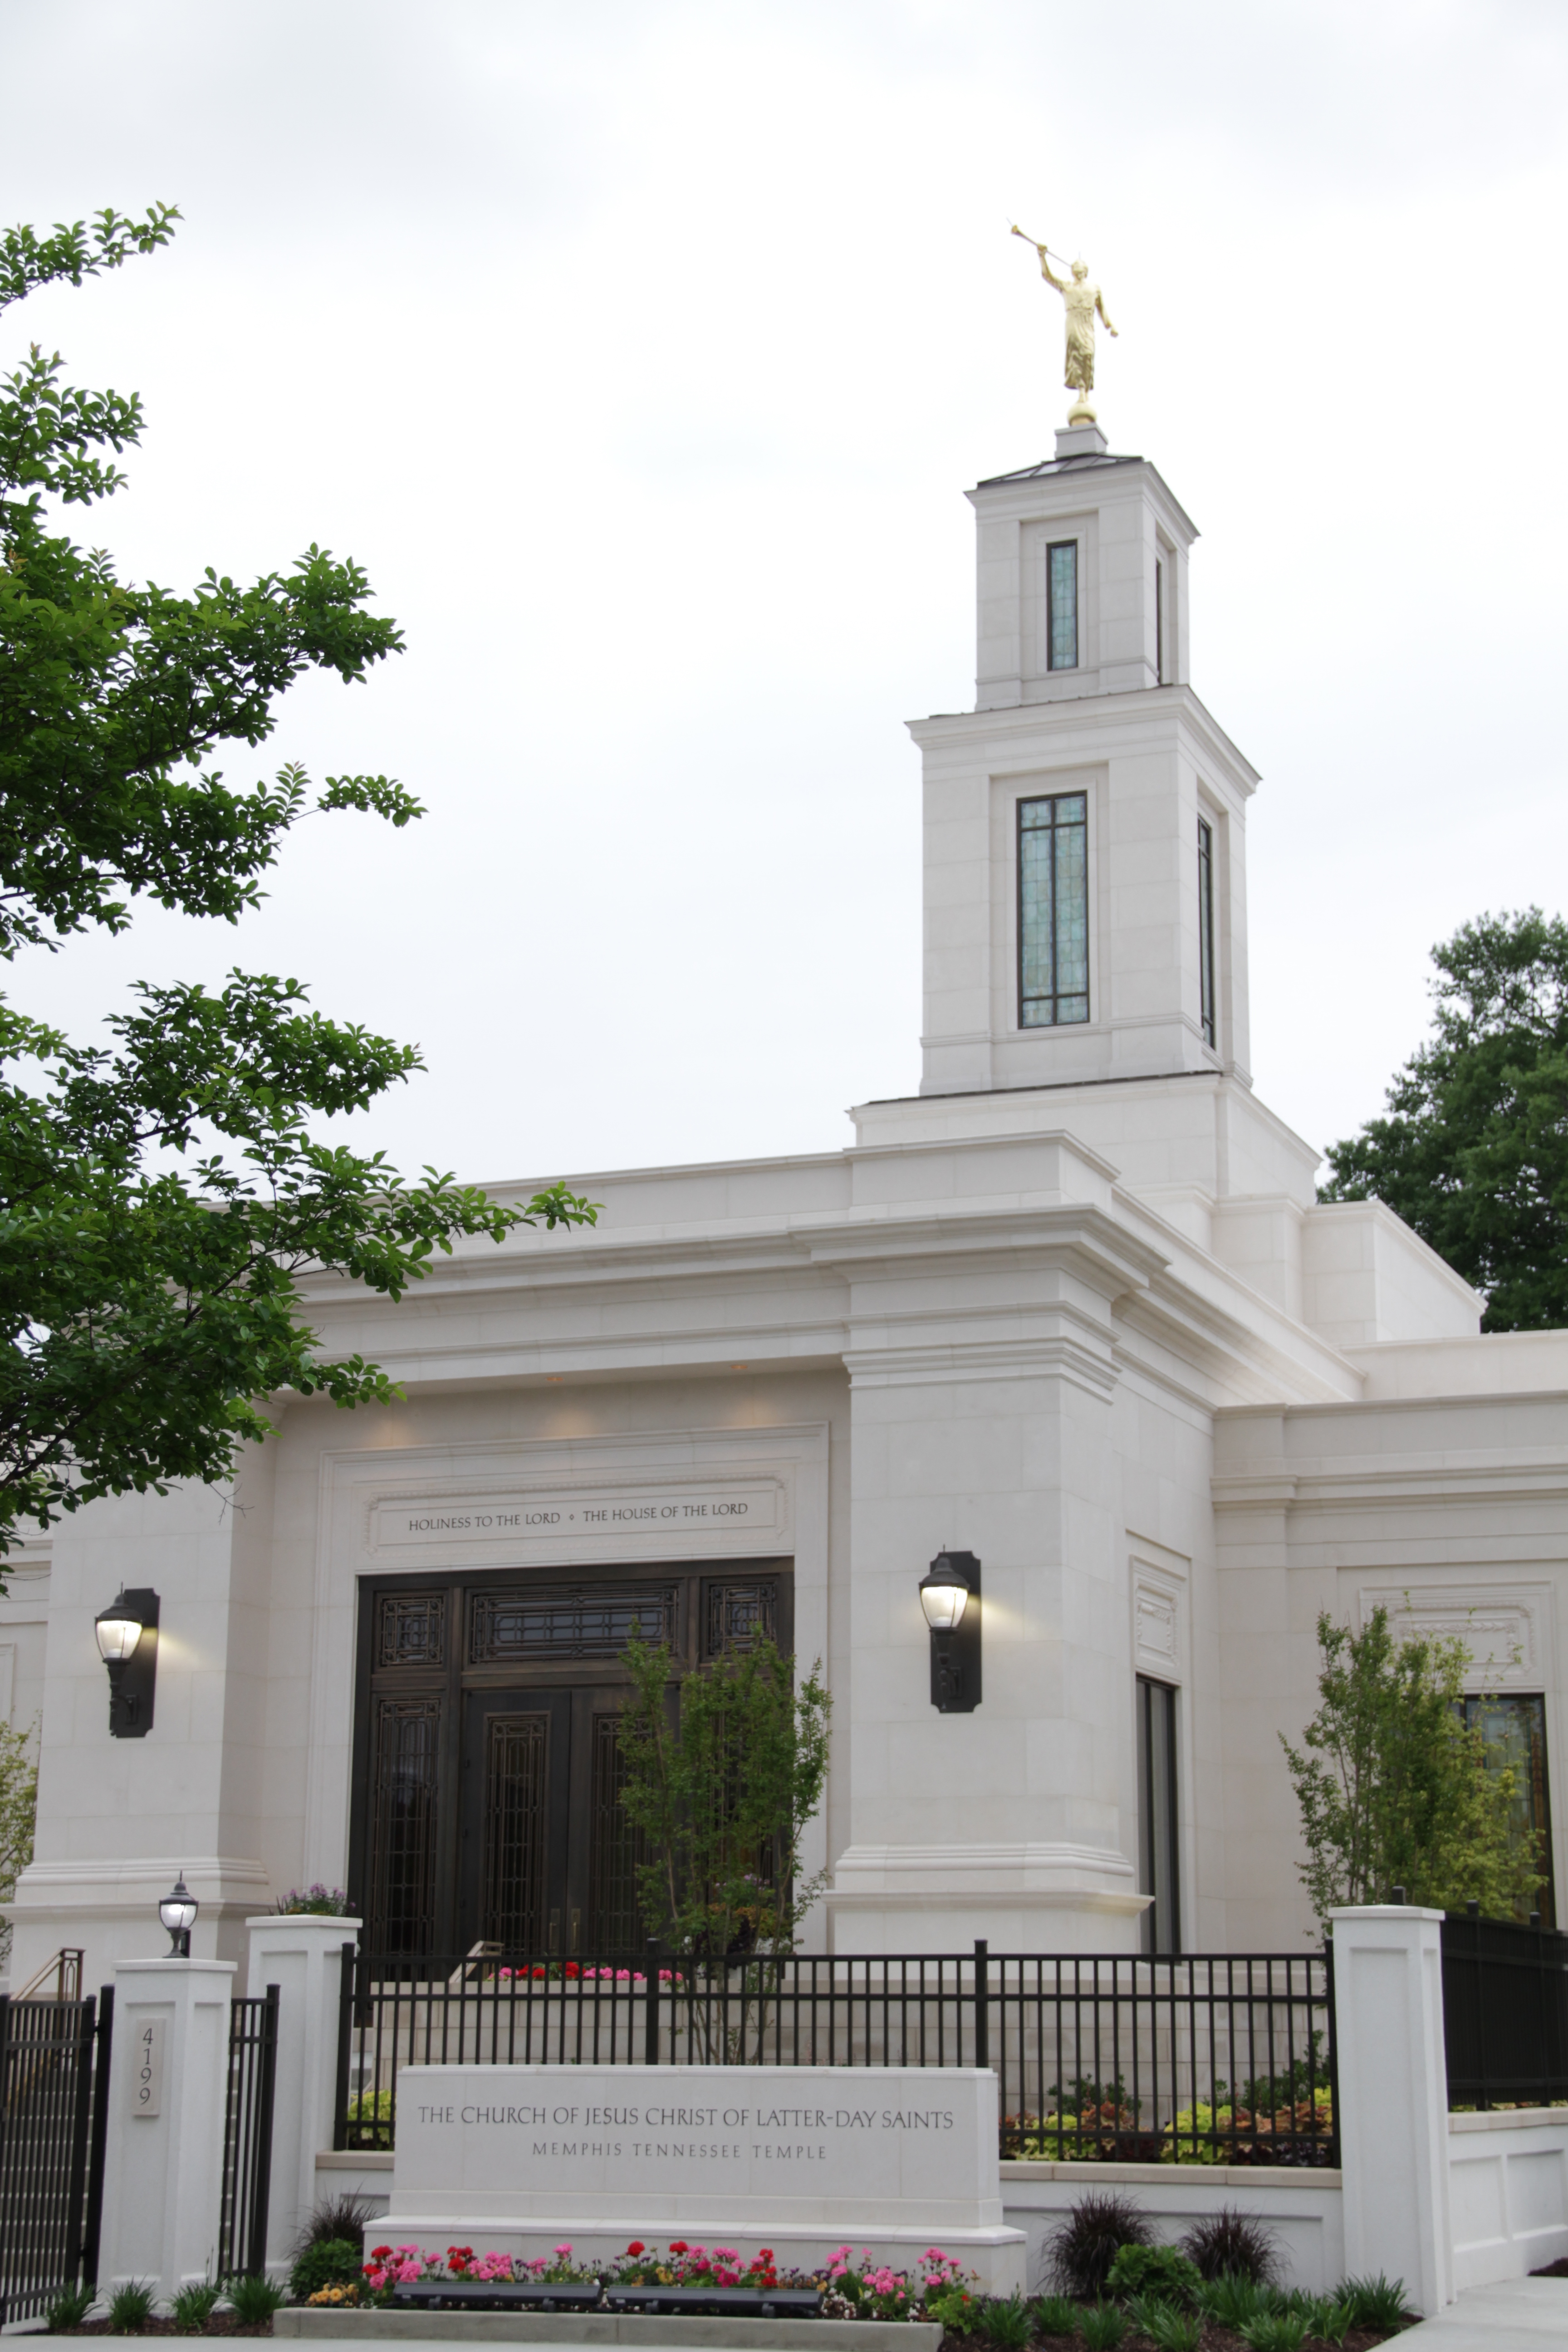 The Memphis Tennessee Temple prior to its rededication on May 3, 2019. The tower was raised 10 feet as part of the 18-month renovation.